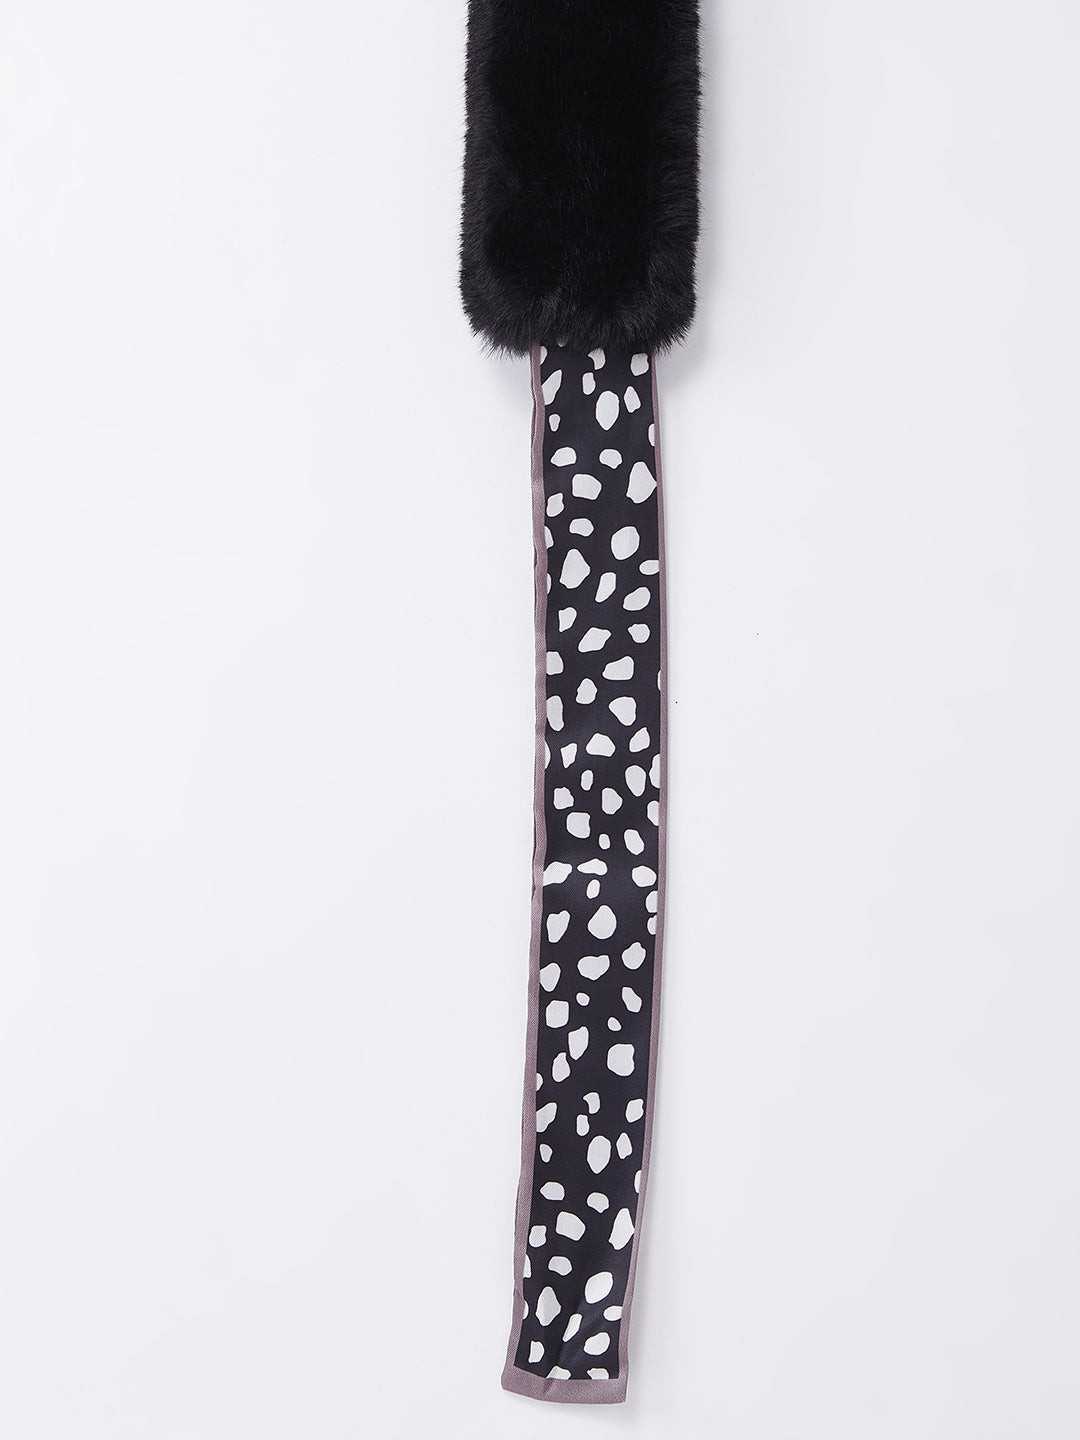 Fur Neckpiece Black